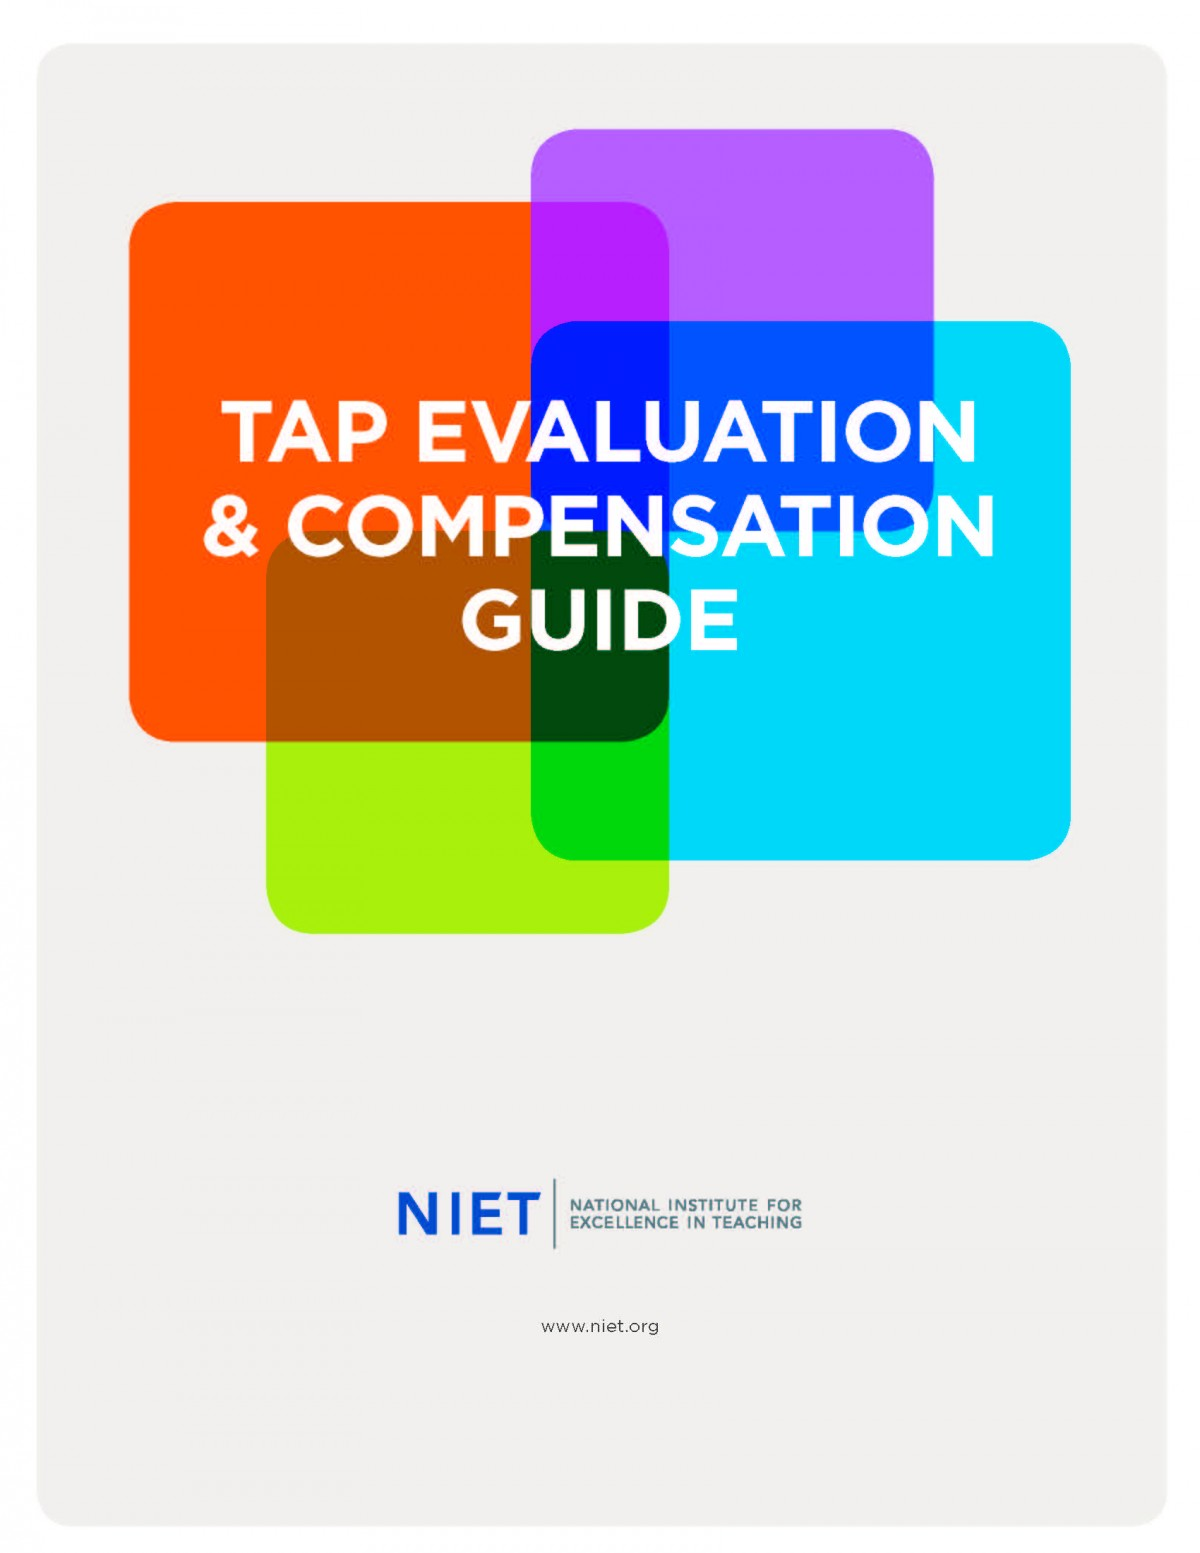 TAP Evaluation and Compensation Guide